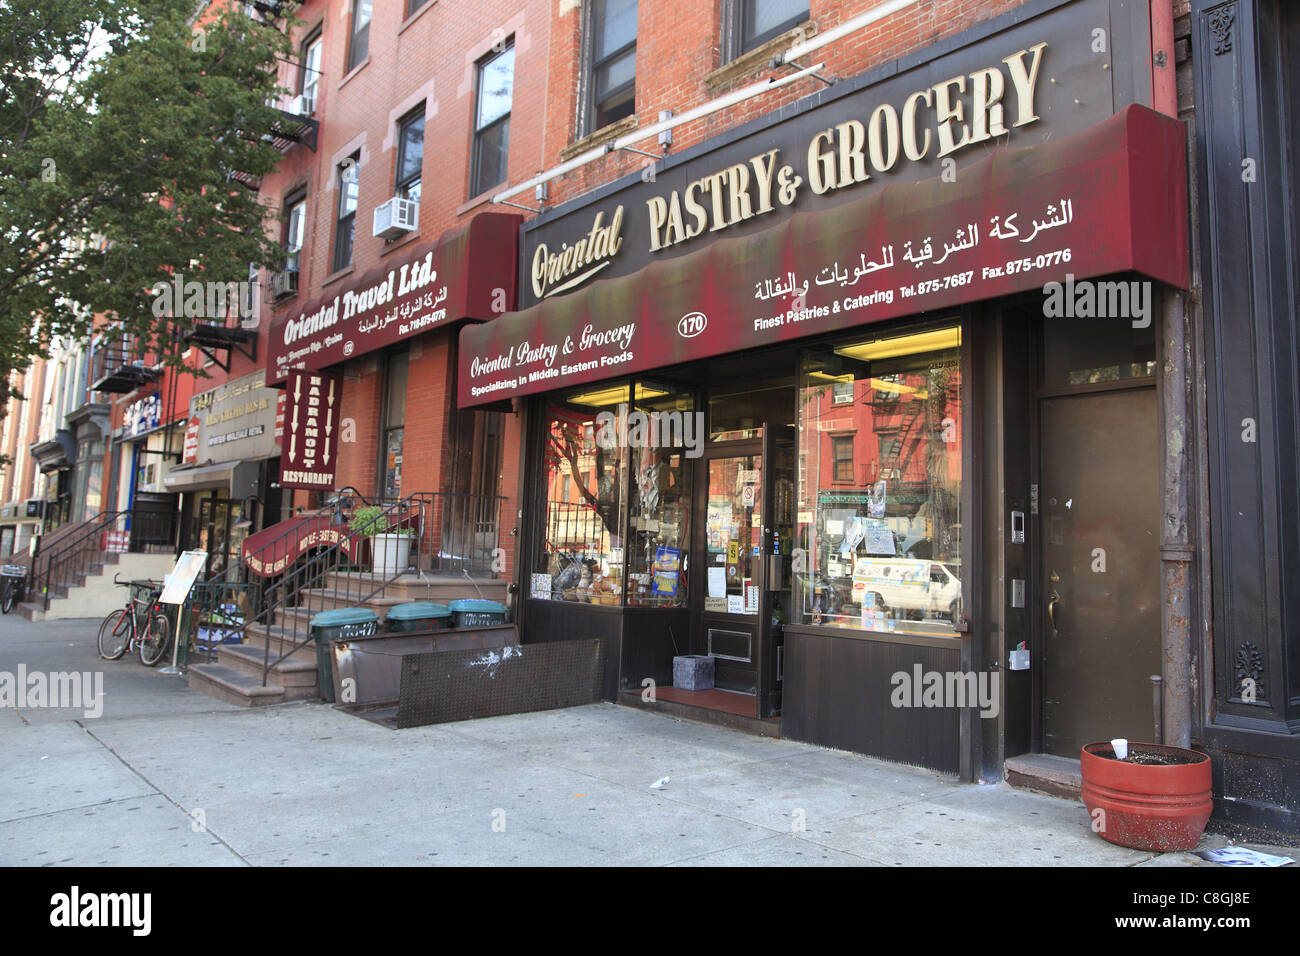 Middle Eastern Grocery, Middle Eastern section of Atlantic Avenue, Cobble Hill, Brooklyn, New York City, USA Stock Photo